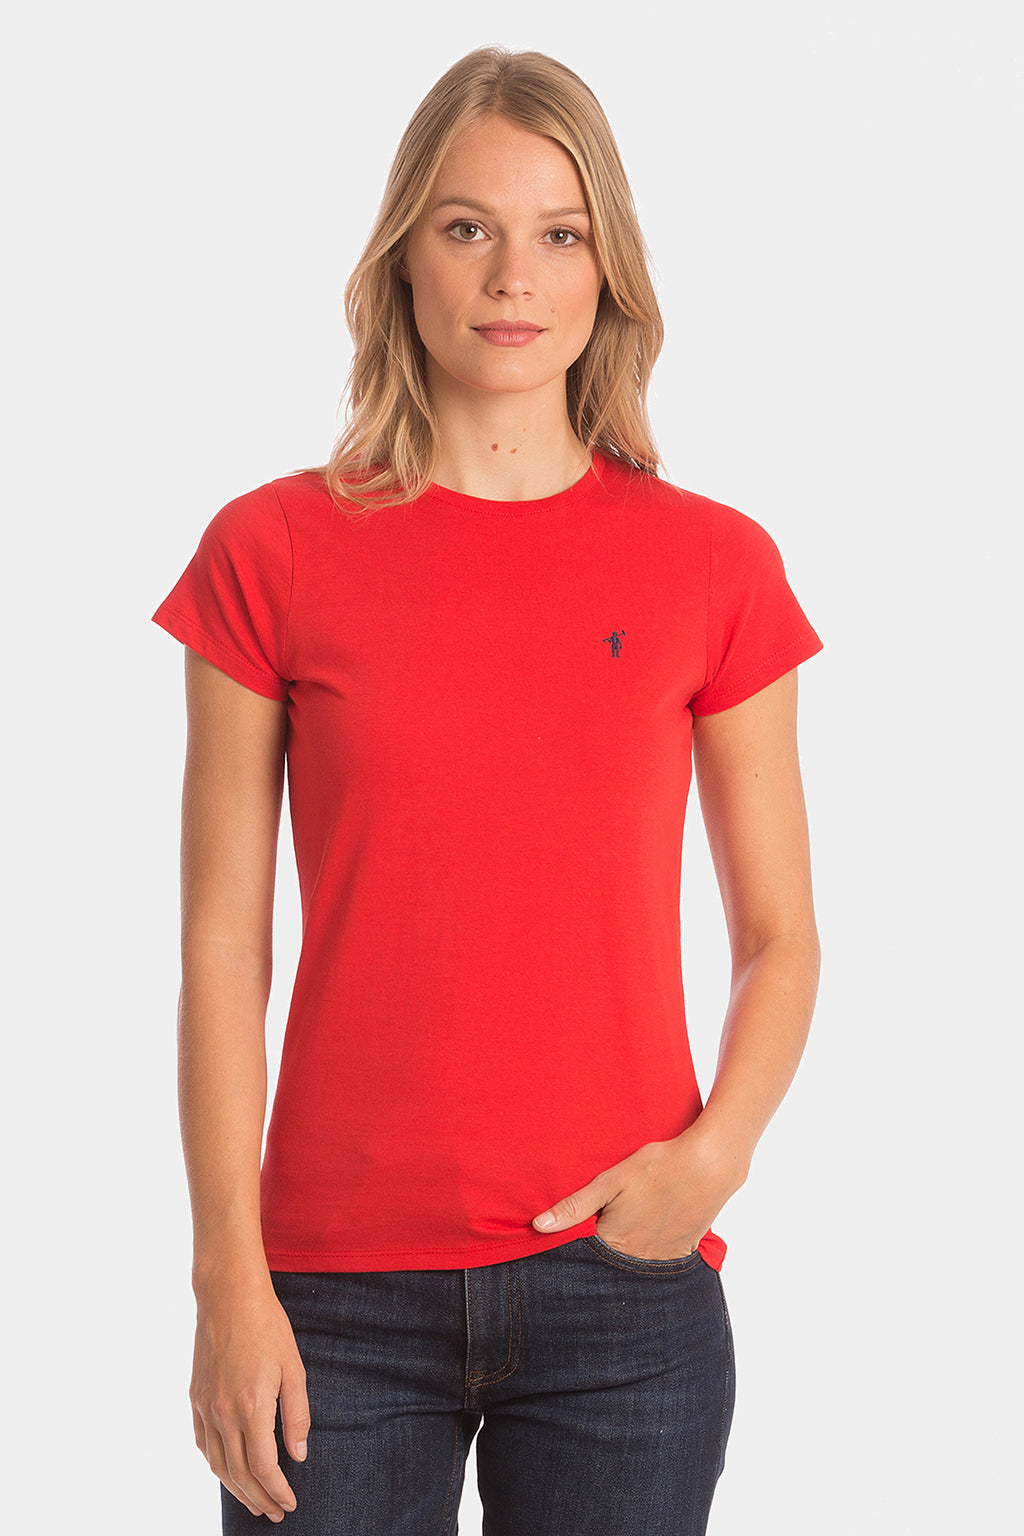 Red cotton tee with embroidered logo